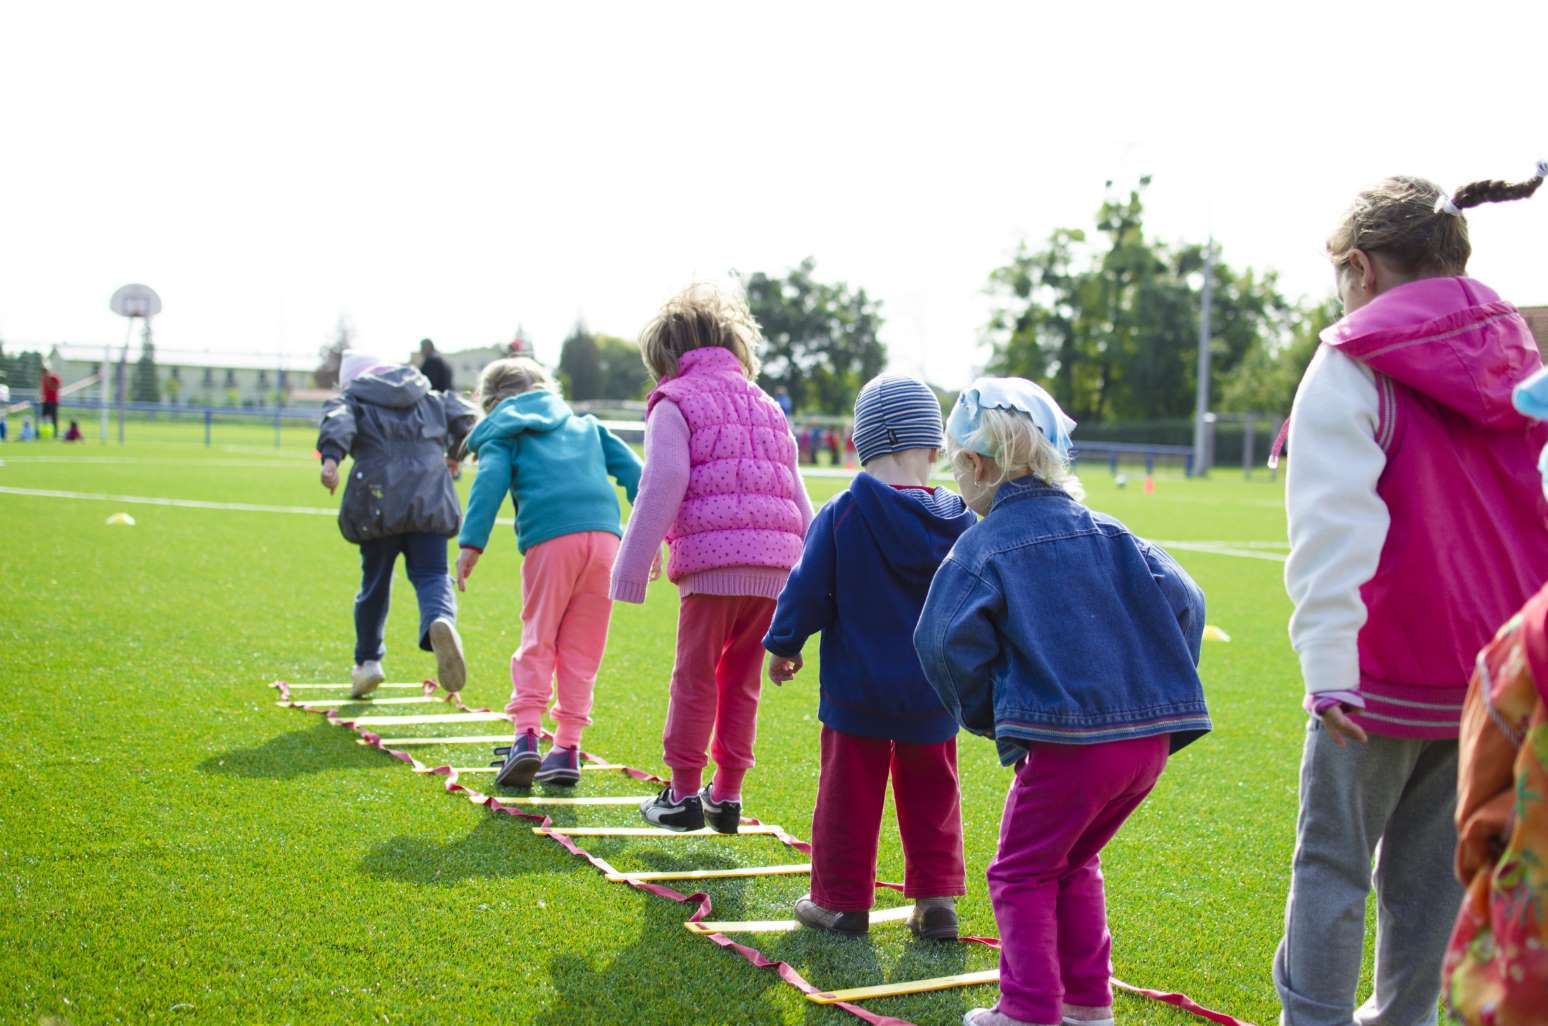 WORKSHOPS - Cavan Children's Occupational Therapy have experience at running a wide range of classes &workshops for parents, teachers and education staff and support groups.Please get in touch if there are any specific classes that you would like to see available.Once we get an idea of how much interest there is, we can start to roll them out.